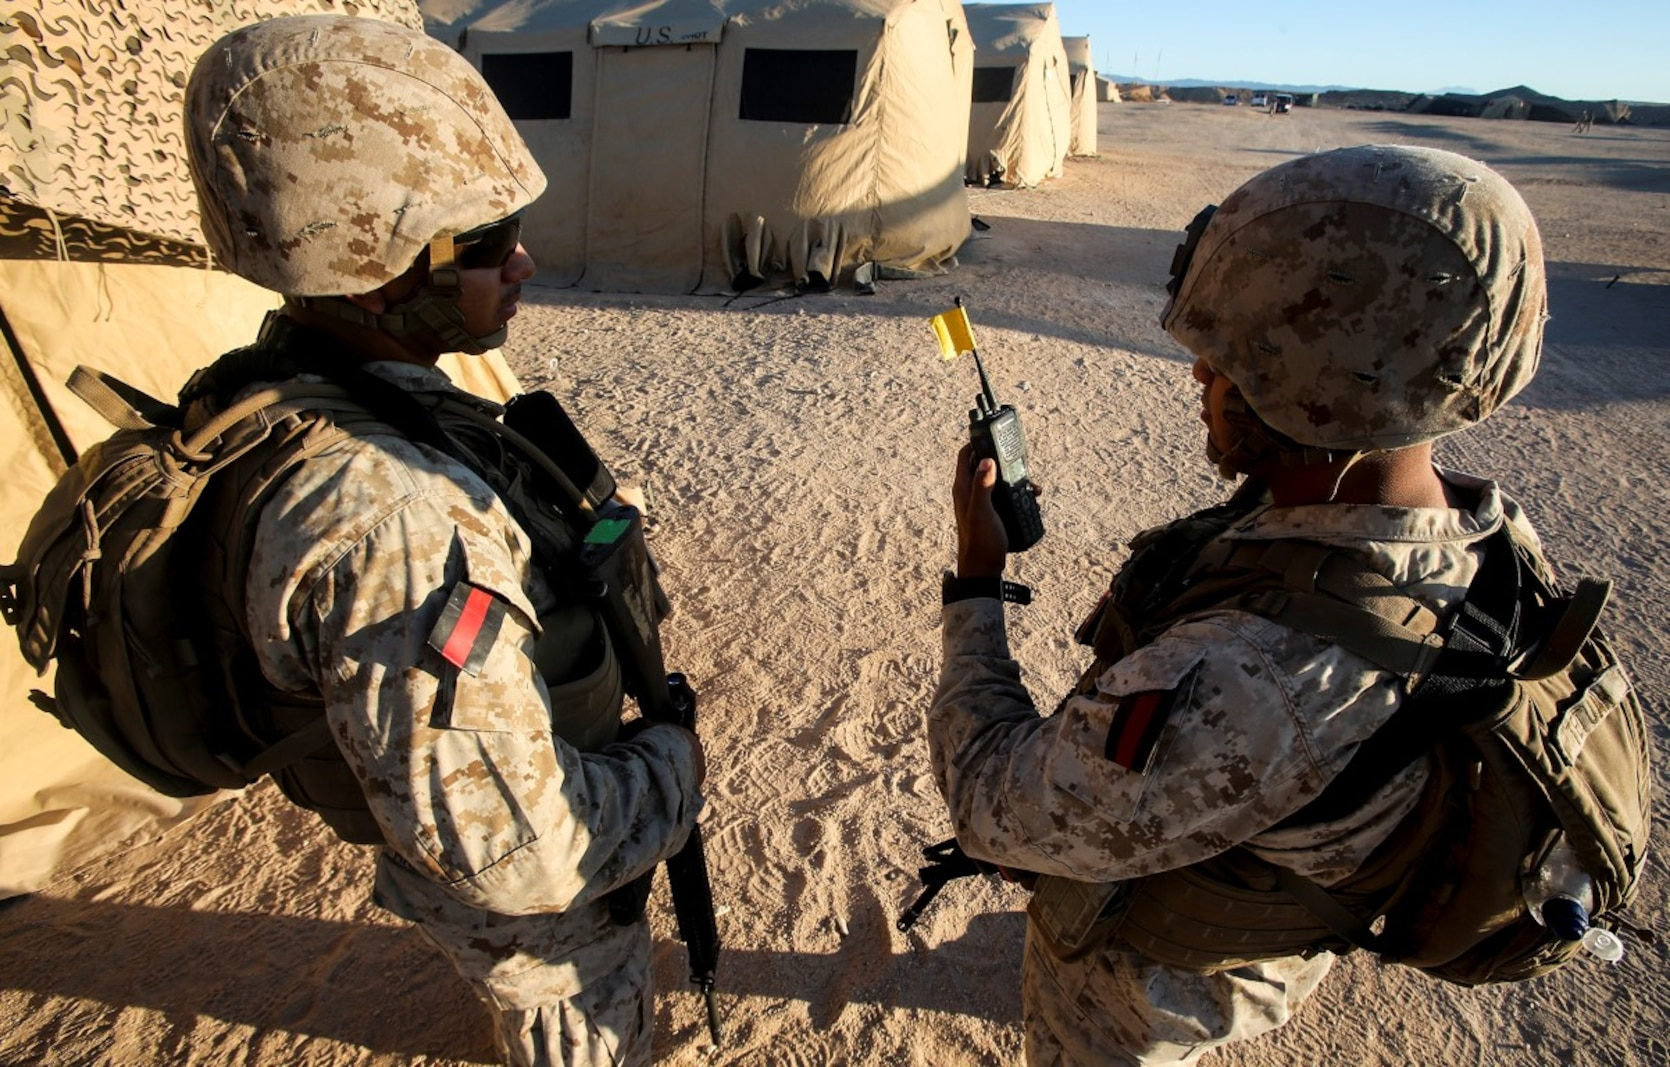 Lance Cpl. Luis Martinez, left, from Jacksonville, Fla., and Lance Cpl. Emilio Tetuan from Topeka, Kan., both with 1st Law Enforcement Battalion, Brigade Headquarters Group, 1st Marine Expeditionary Brigade and tasked to provide security for Camp Francis as Guardian Angels during Large Scale Exercise 2014, perform a radio functionality check aboard Marine Corps Air Ground Combat Center Twentynine Palms, Calif., Aug. 5. LSE-14 is a bilateral training exercise being conducted by 1st MEB to build U.S. and Canadian forces' joint capabilities through live, simulated, and constructive military training activities from Aug. 8-14. (U.S. Marine Corps photo by Cpl. Rick Hurtado/Released)